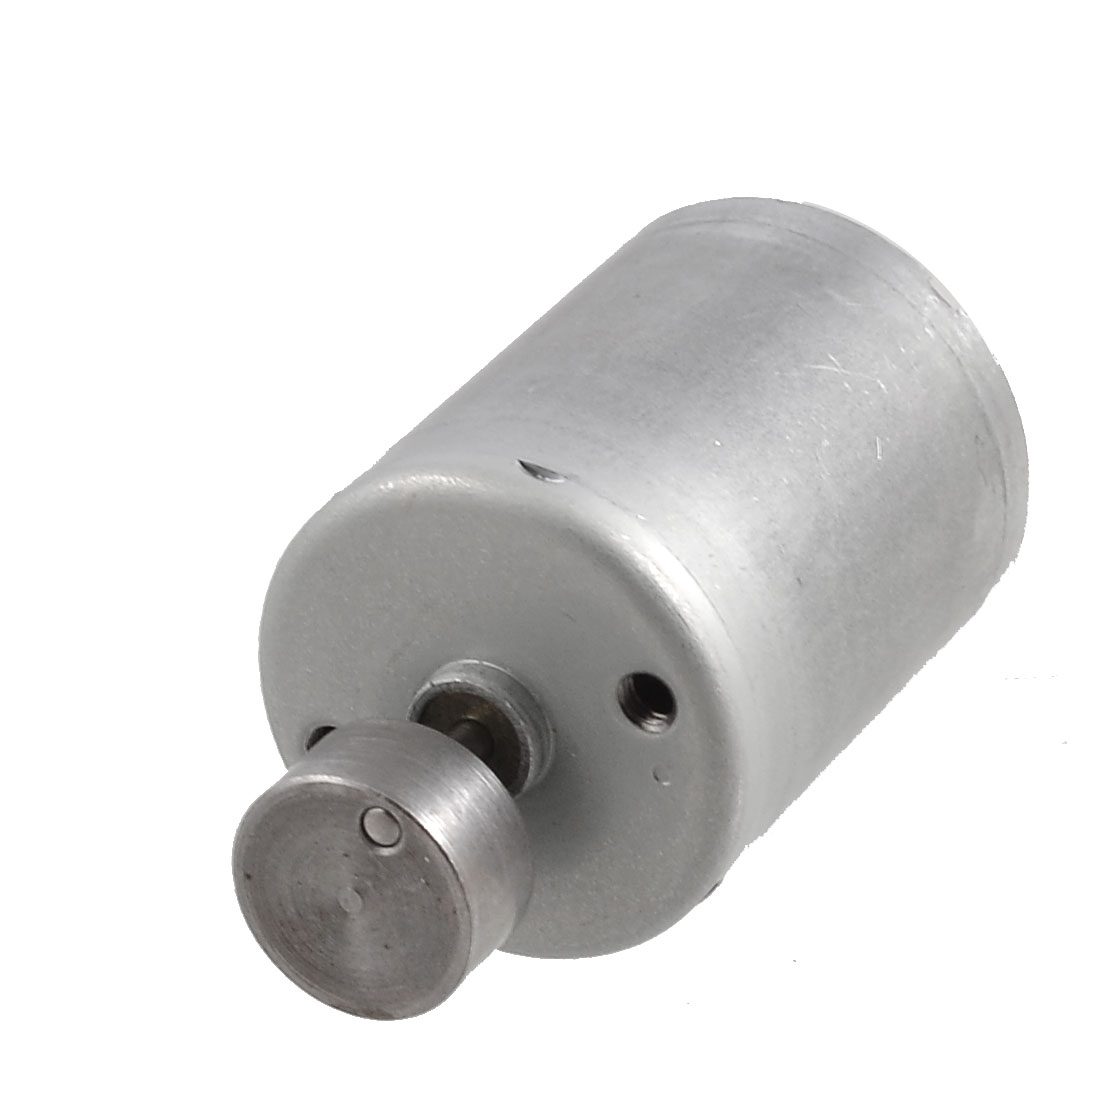 8300RPM-Output-Speed-DC-12V-0-1A-2-Pin-Terminals-Vibration-Motor